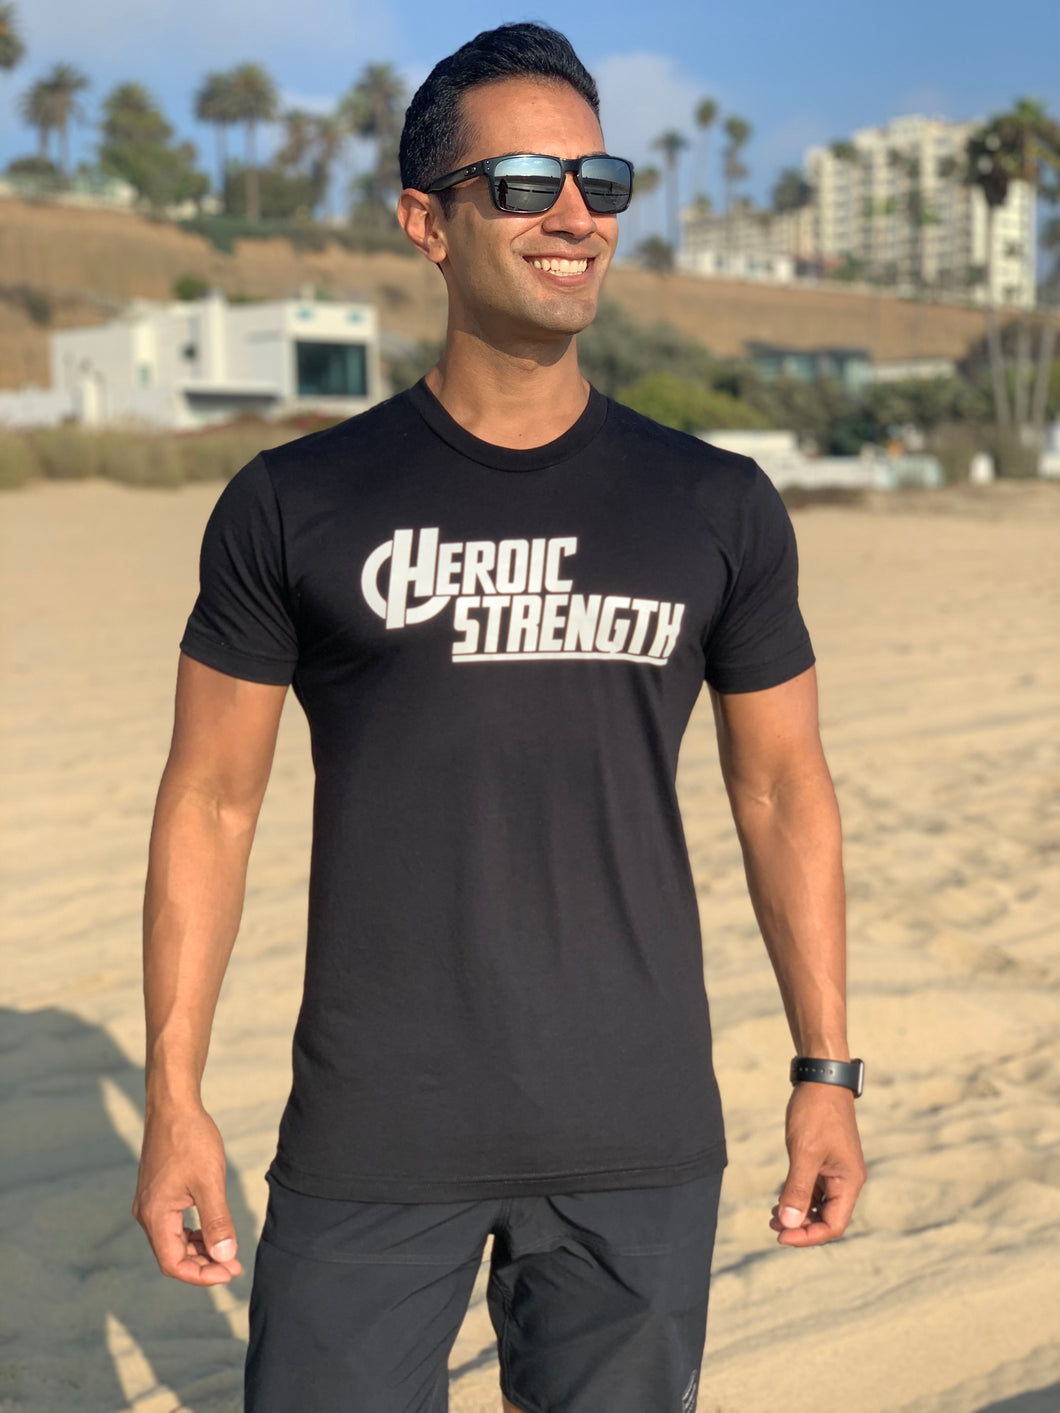 Saul wears the Heroic Strength T-Shirt in Black, Size Medium.